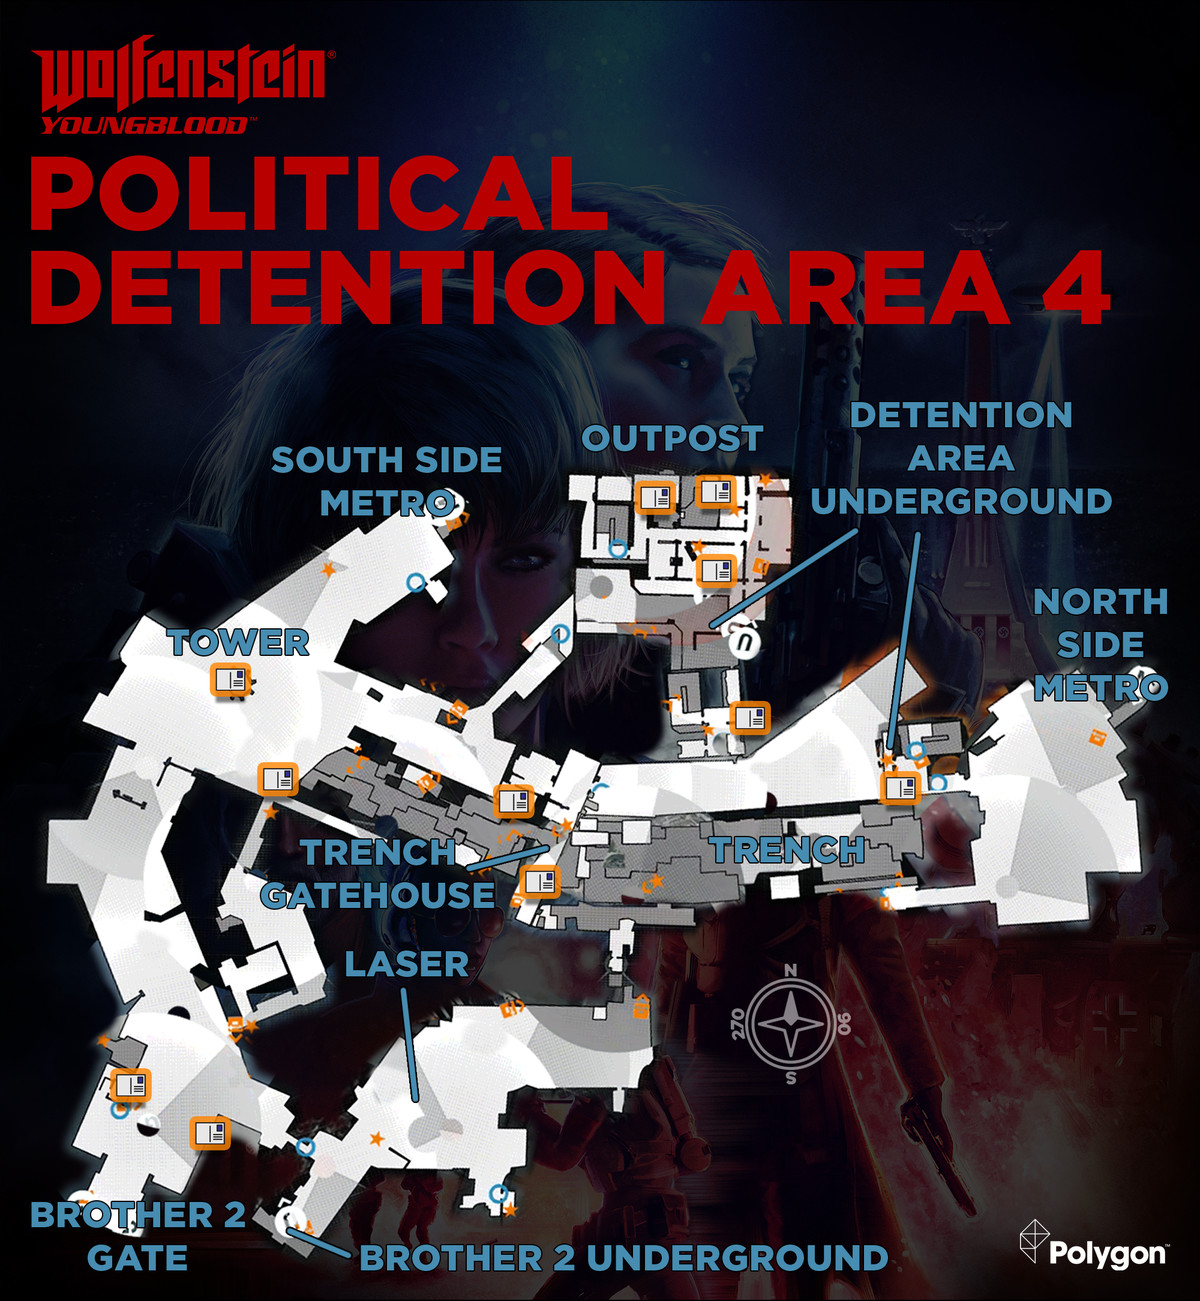 Wolfenstein: Youngblood Political Detention Area 4map with Readable collectible locations